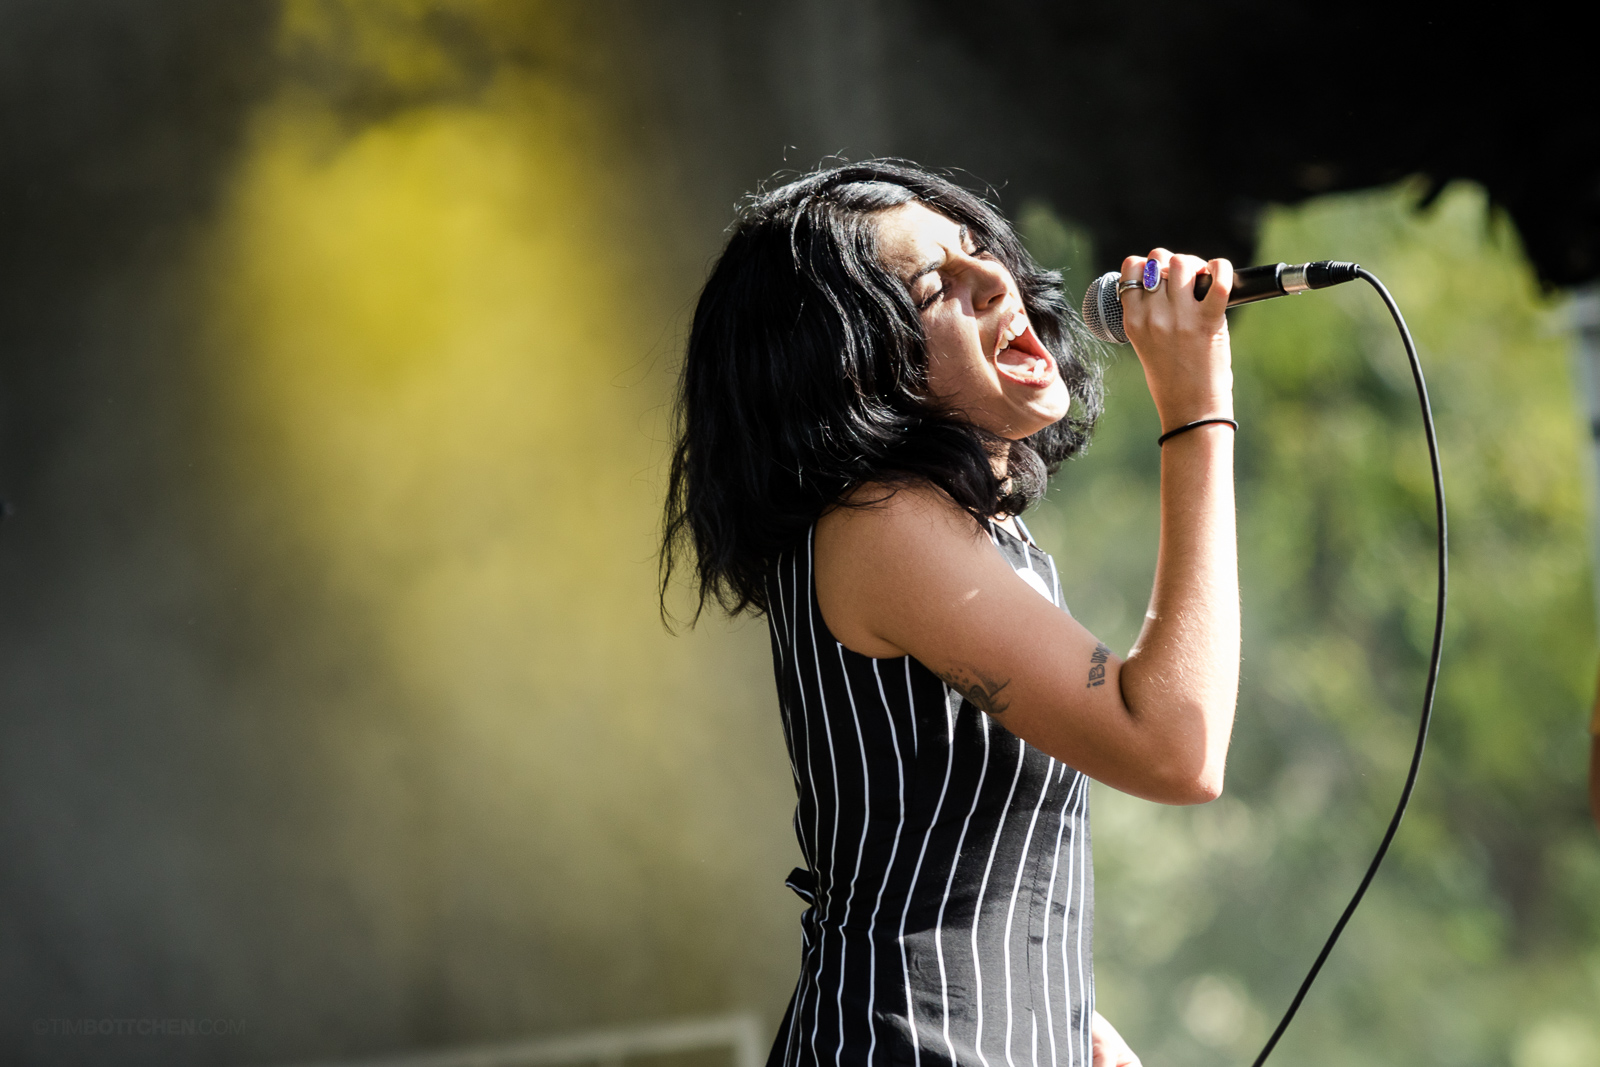 Jessica Hernandez & The Deltas at LouFest